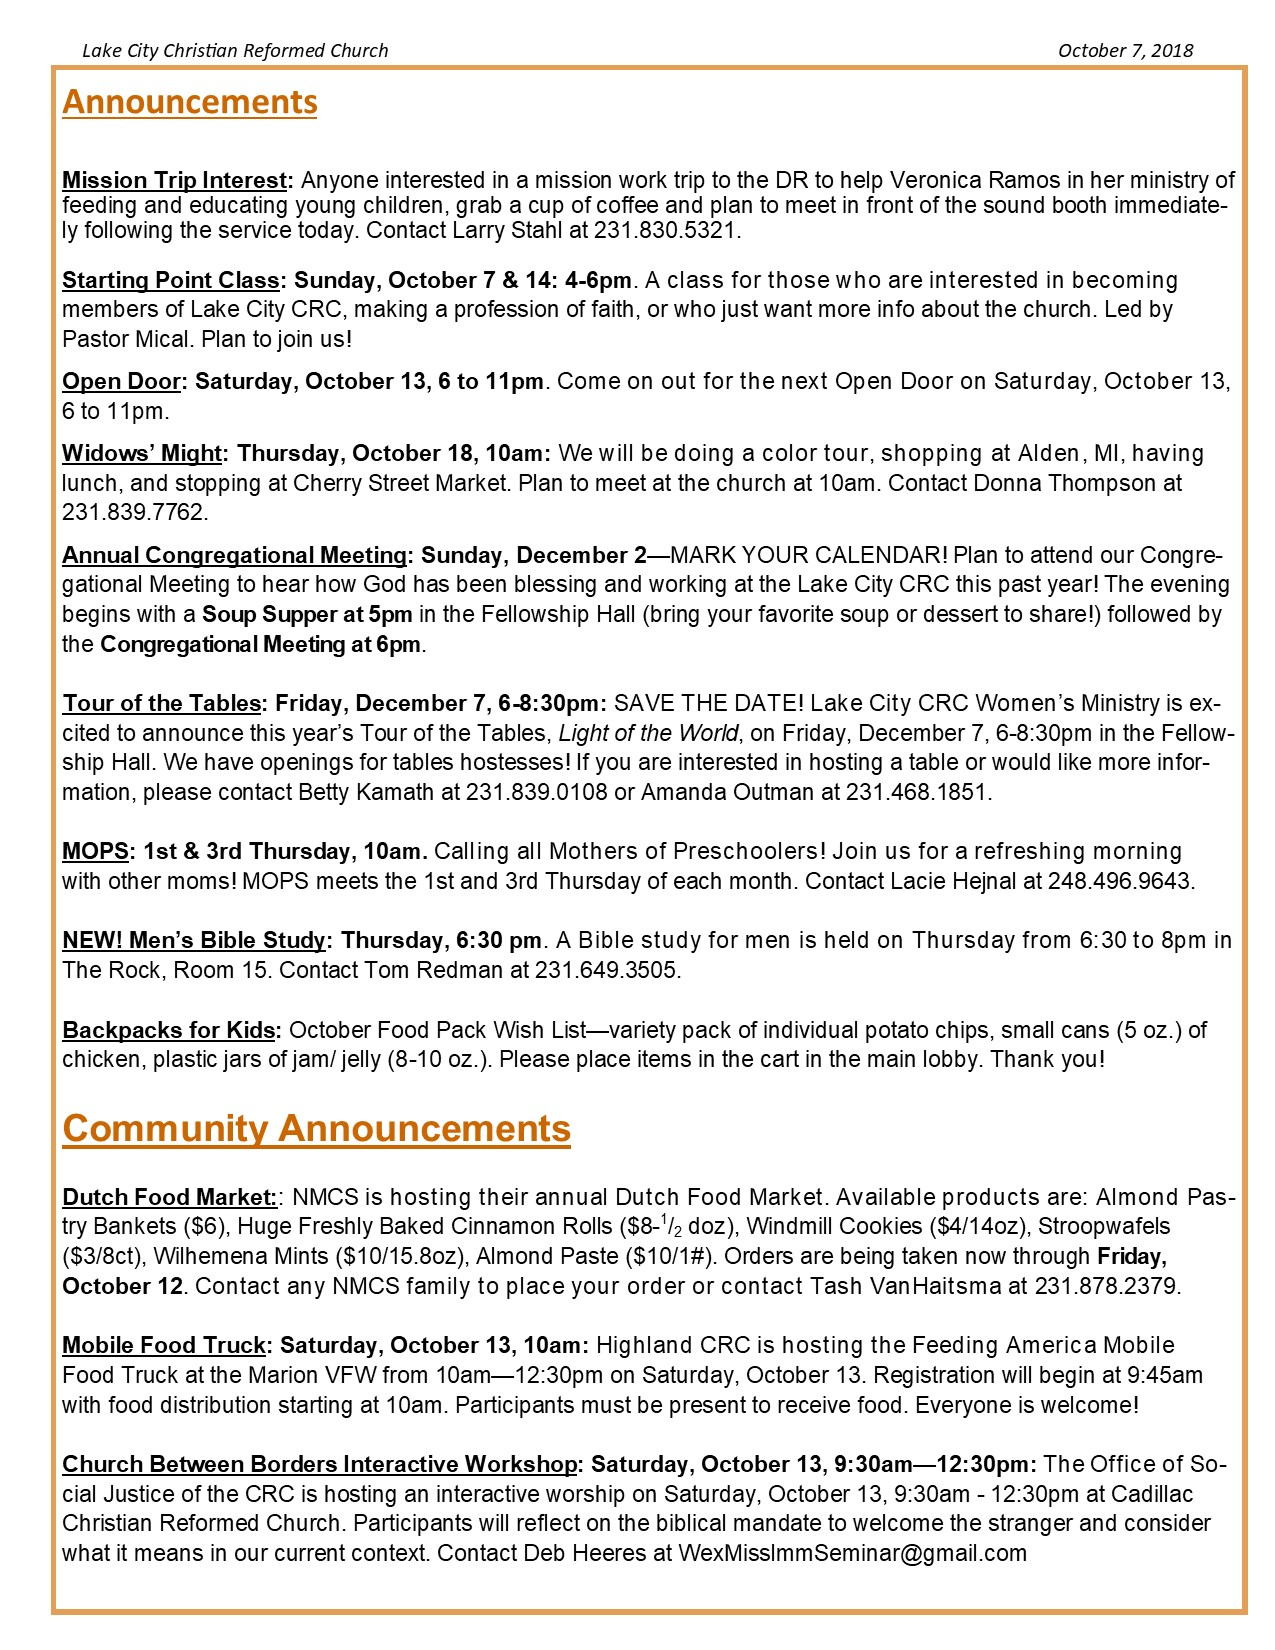 October 7, 2018 Bulletin – Lake City